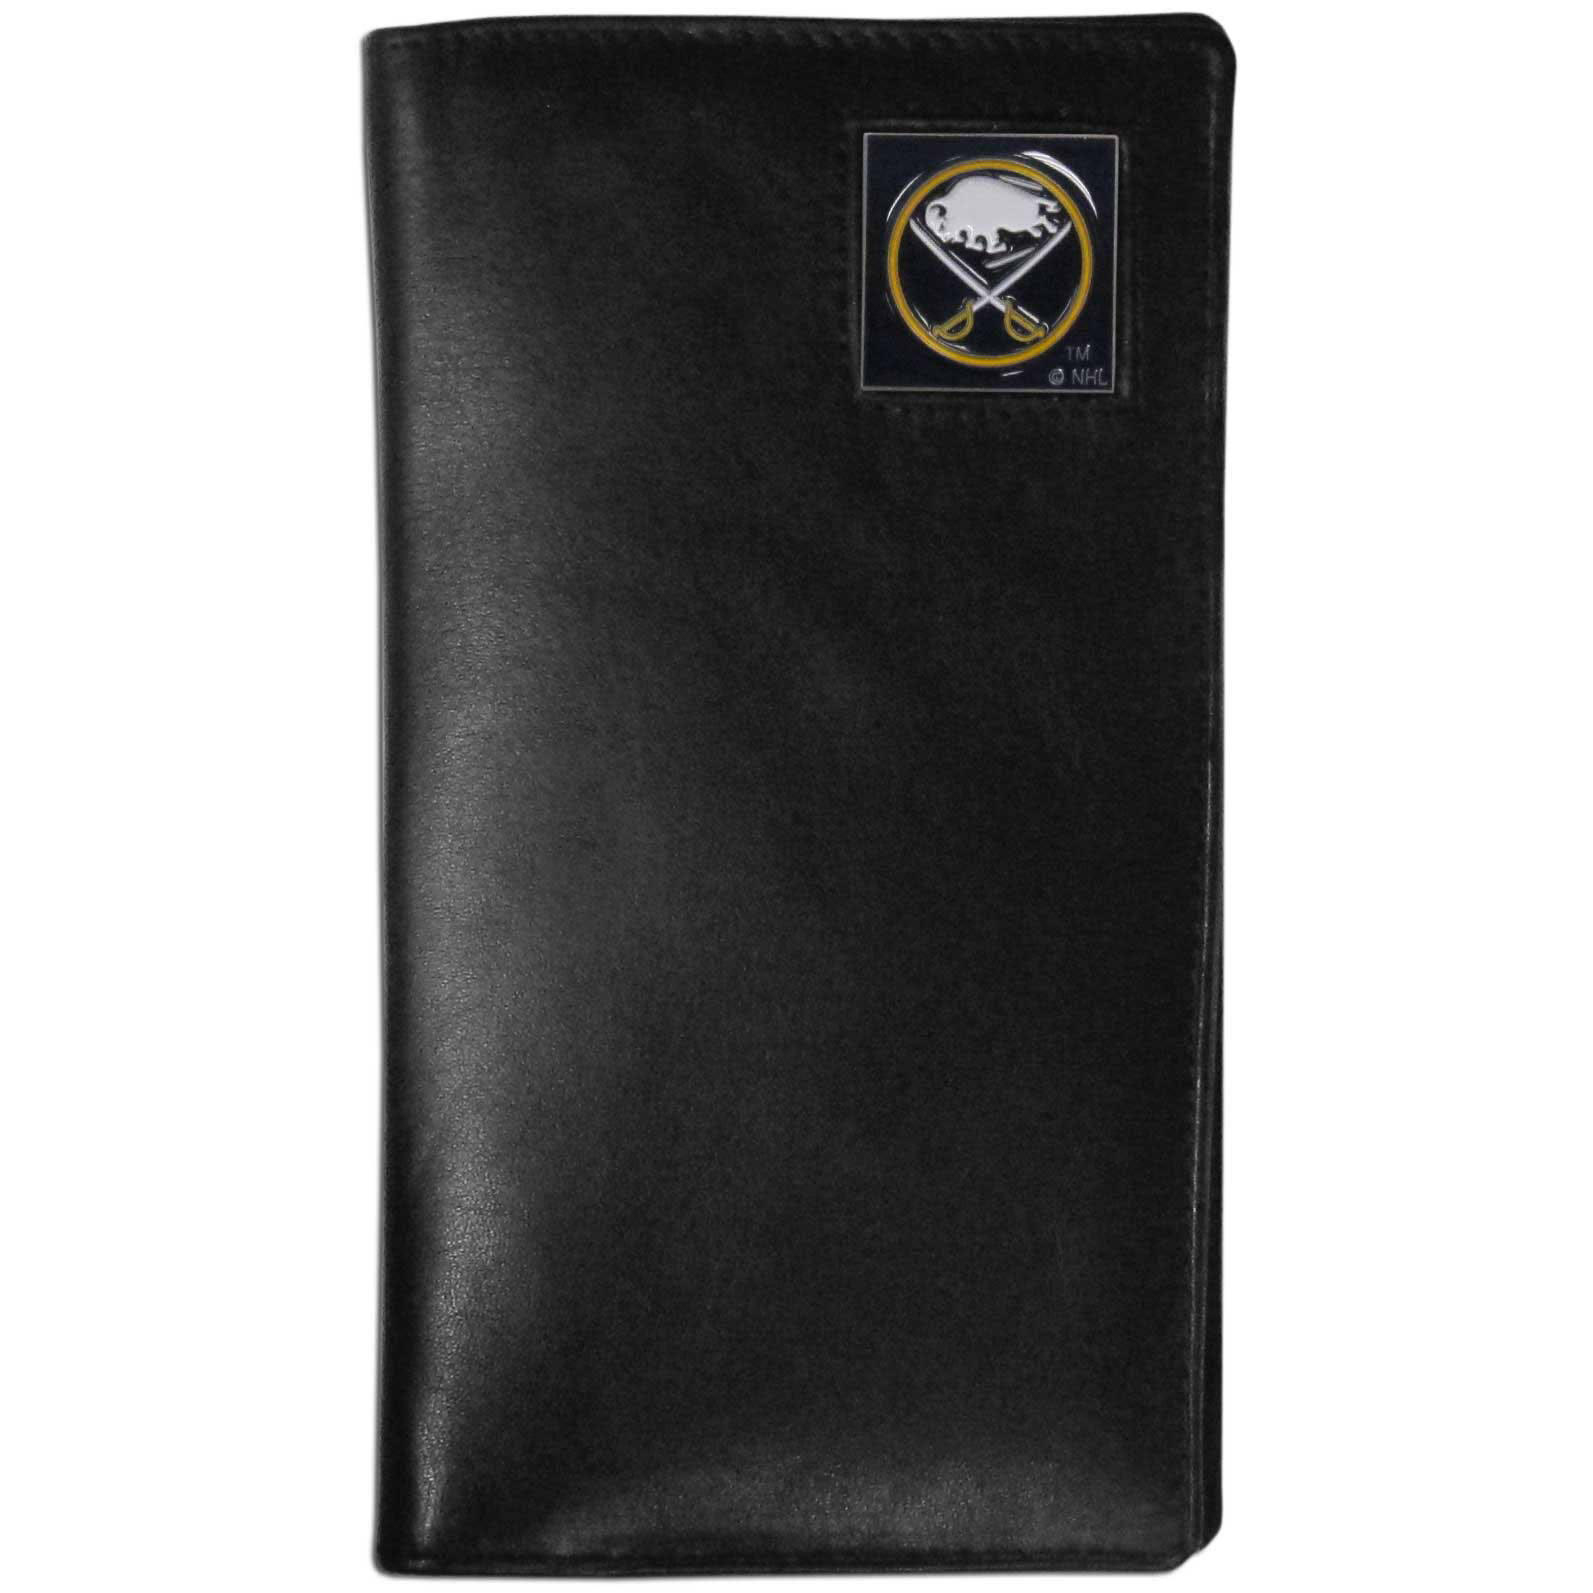 Buffalo Sabres Tall Leather Wallet - This officially licensed Buffalo Sabres tall leather wallet cover is made of high quality leather with a fully cast metal Buffalo Sabres emblem with enameled Buffalo Sabres color detail. The cover fits both side and top loaded checks and includes a large zippered pocket, windowed ID slot, numerous credit card slots and billfold pocket.